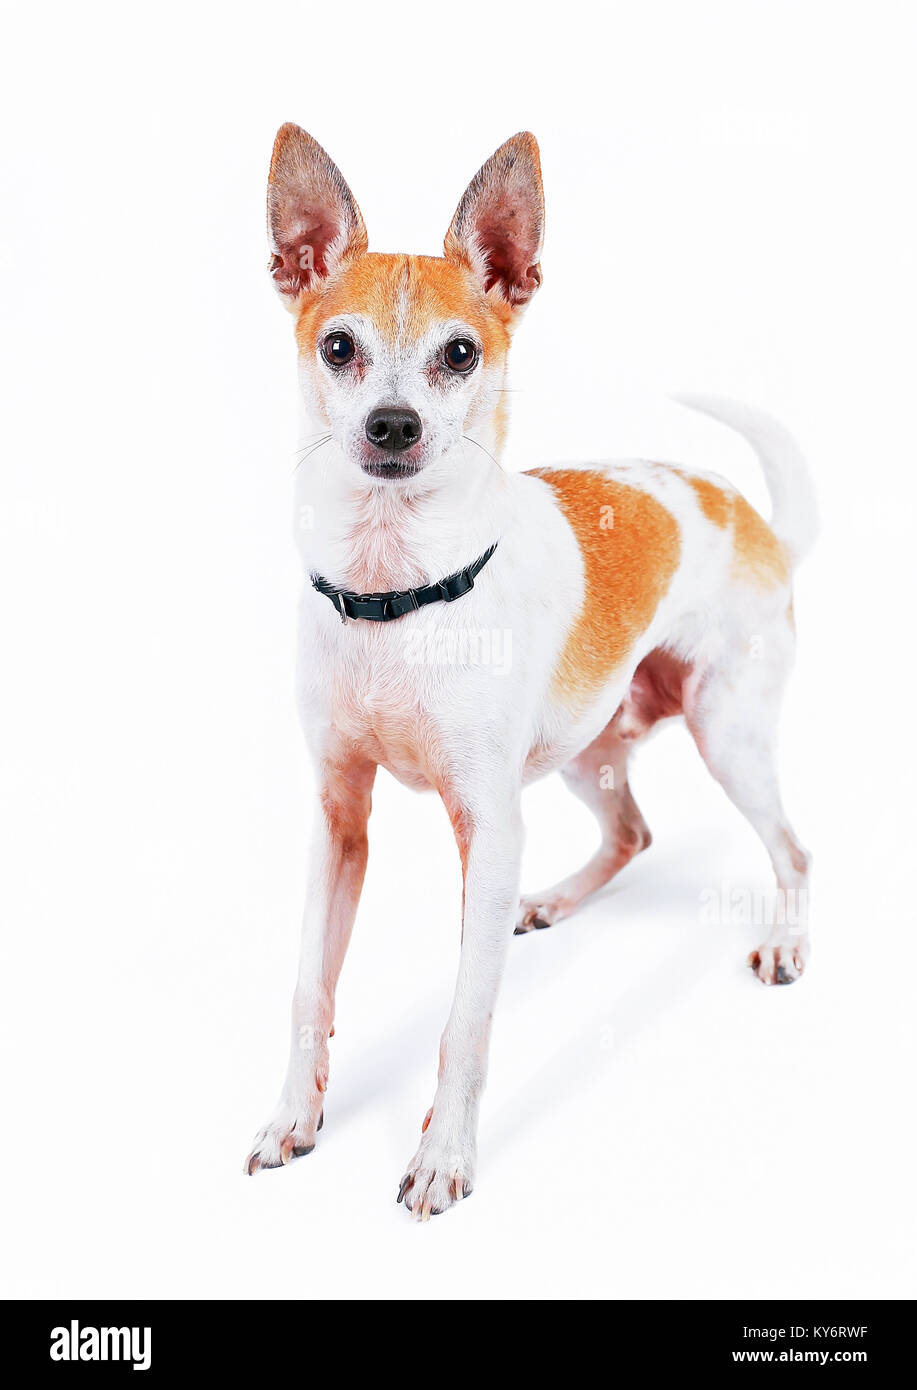 cute fox or rat terrier chihuahua mix in a studio shot on an isolated white background - Stock Image